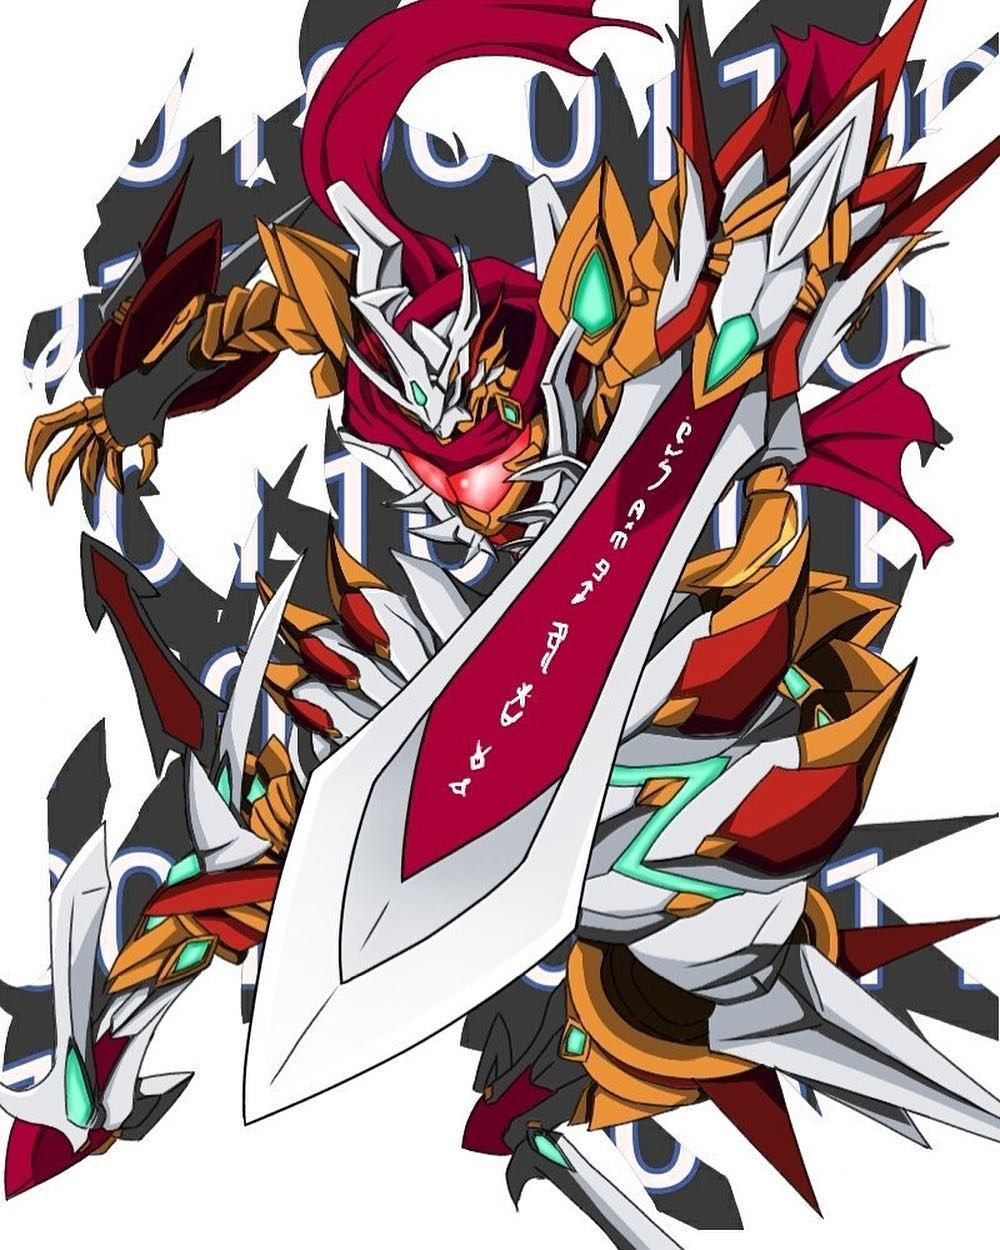 Jesmon X Antibody B Digimon Wallpaper Digimon Digimon Digital Monsters Digimon royal knights » jesmon x antibody. jesmon x antibody b digimon